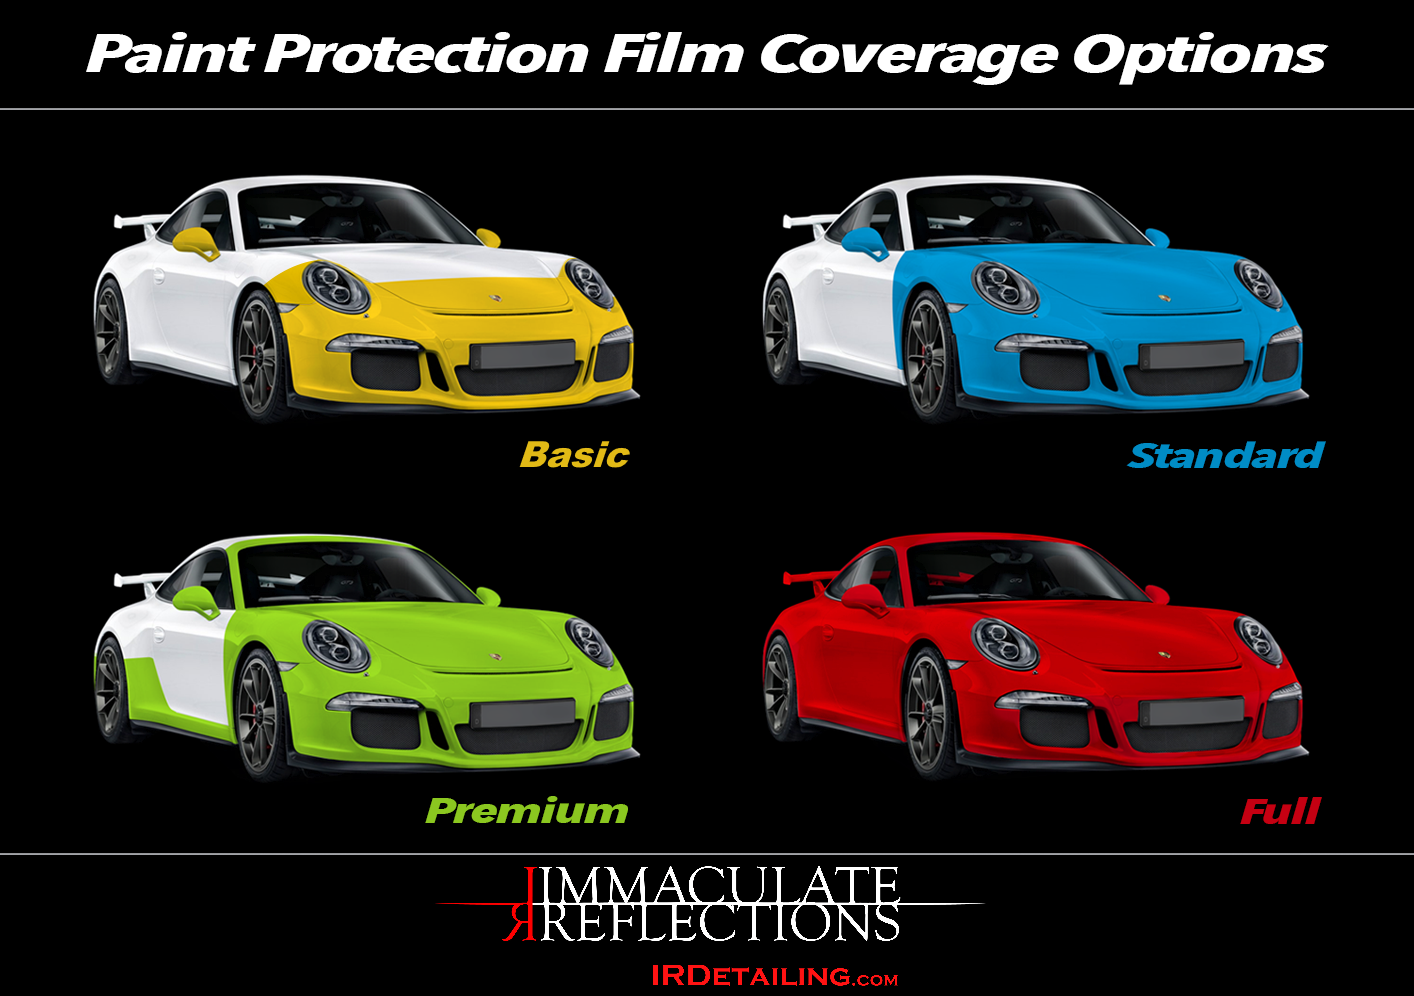 Immaculate Reflections Auto Detailing offers many Paint Protection Film (PPF or Clear Bra) options to protect your vehicle from road impacts.